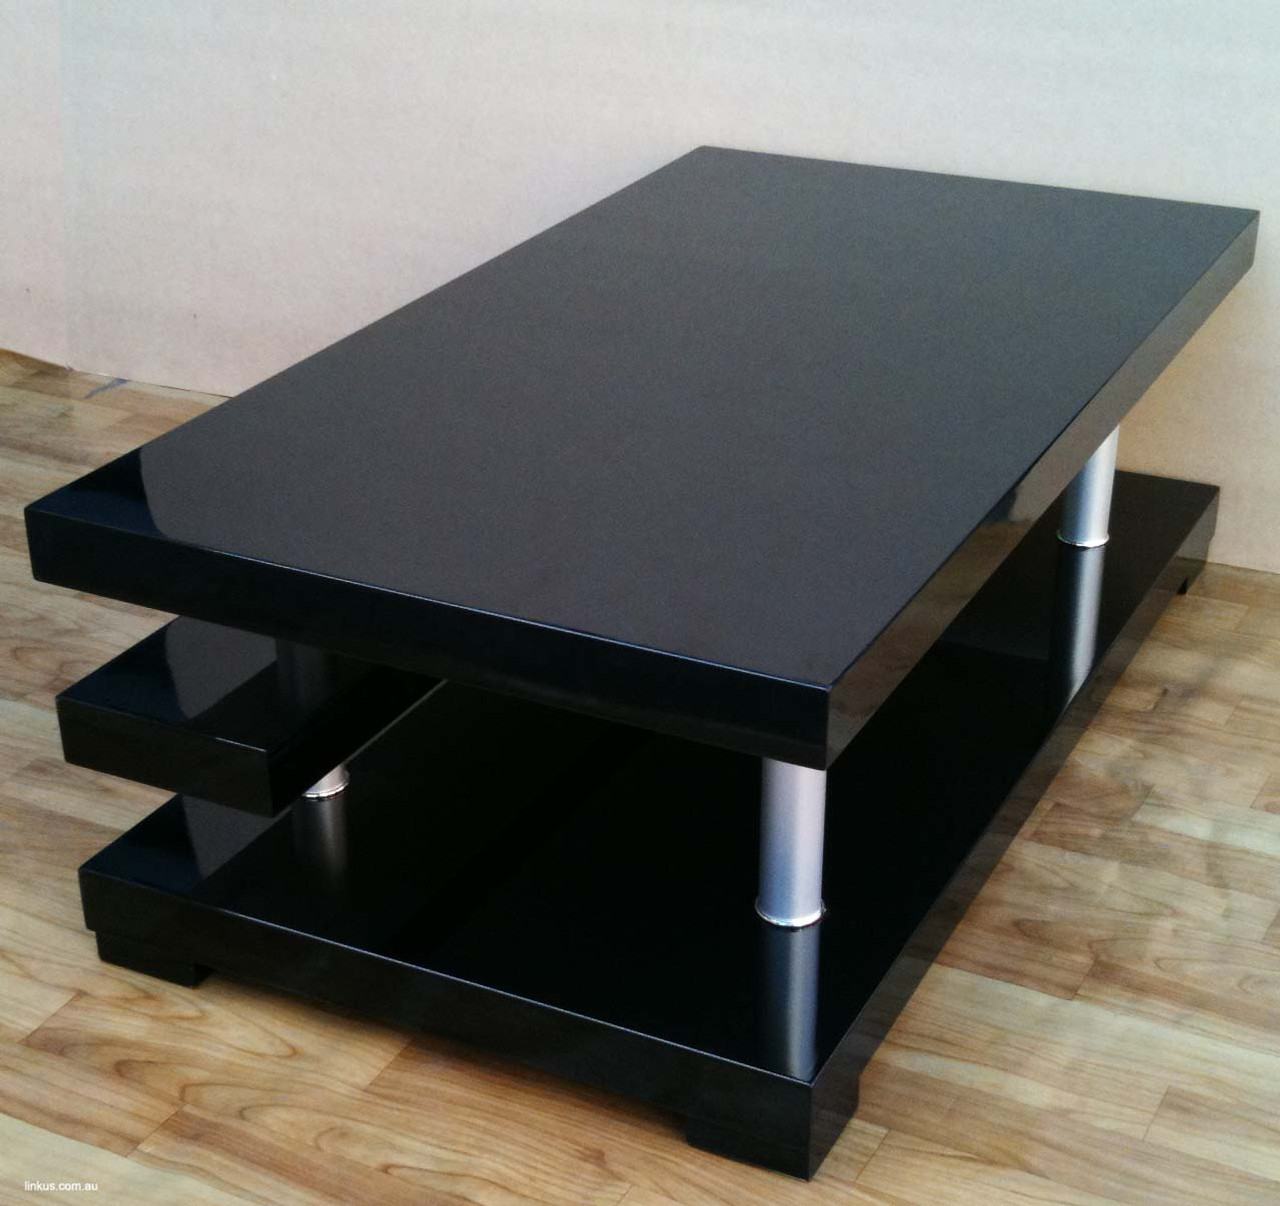 1 2m shiny gloss black coffee table roland